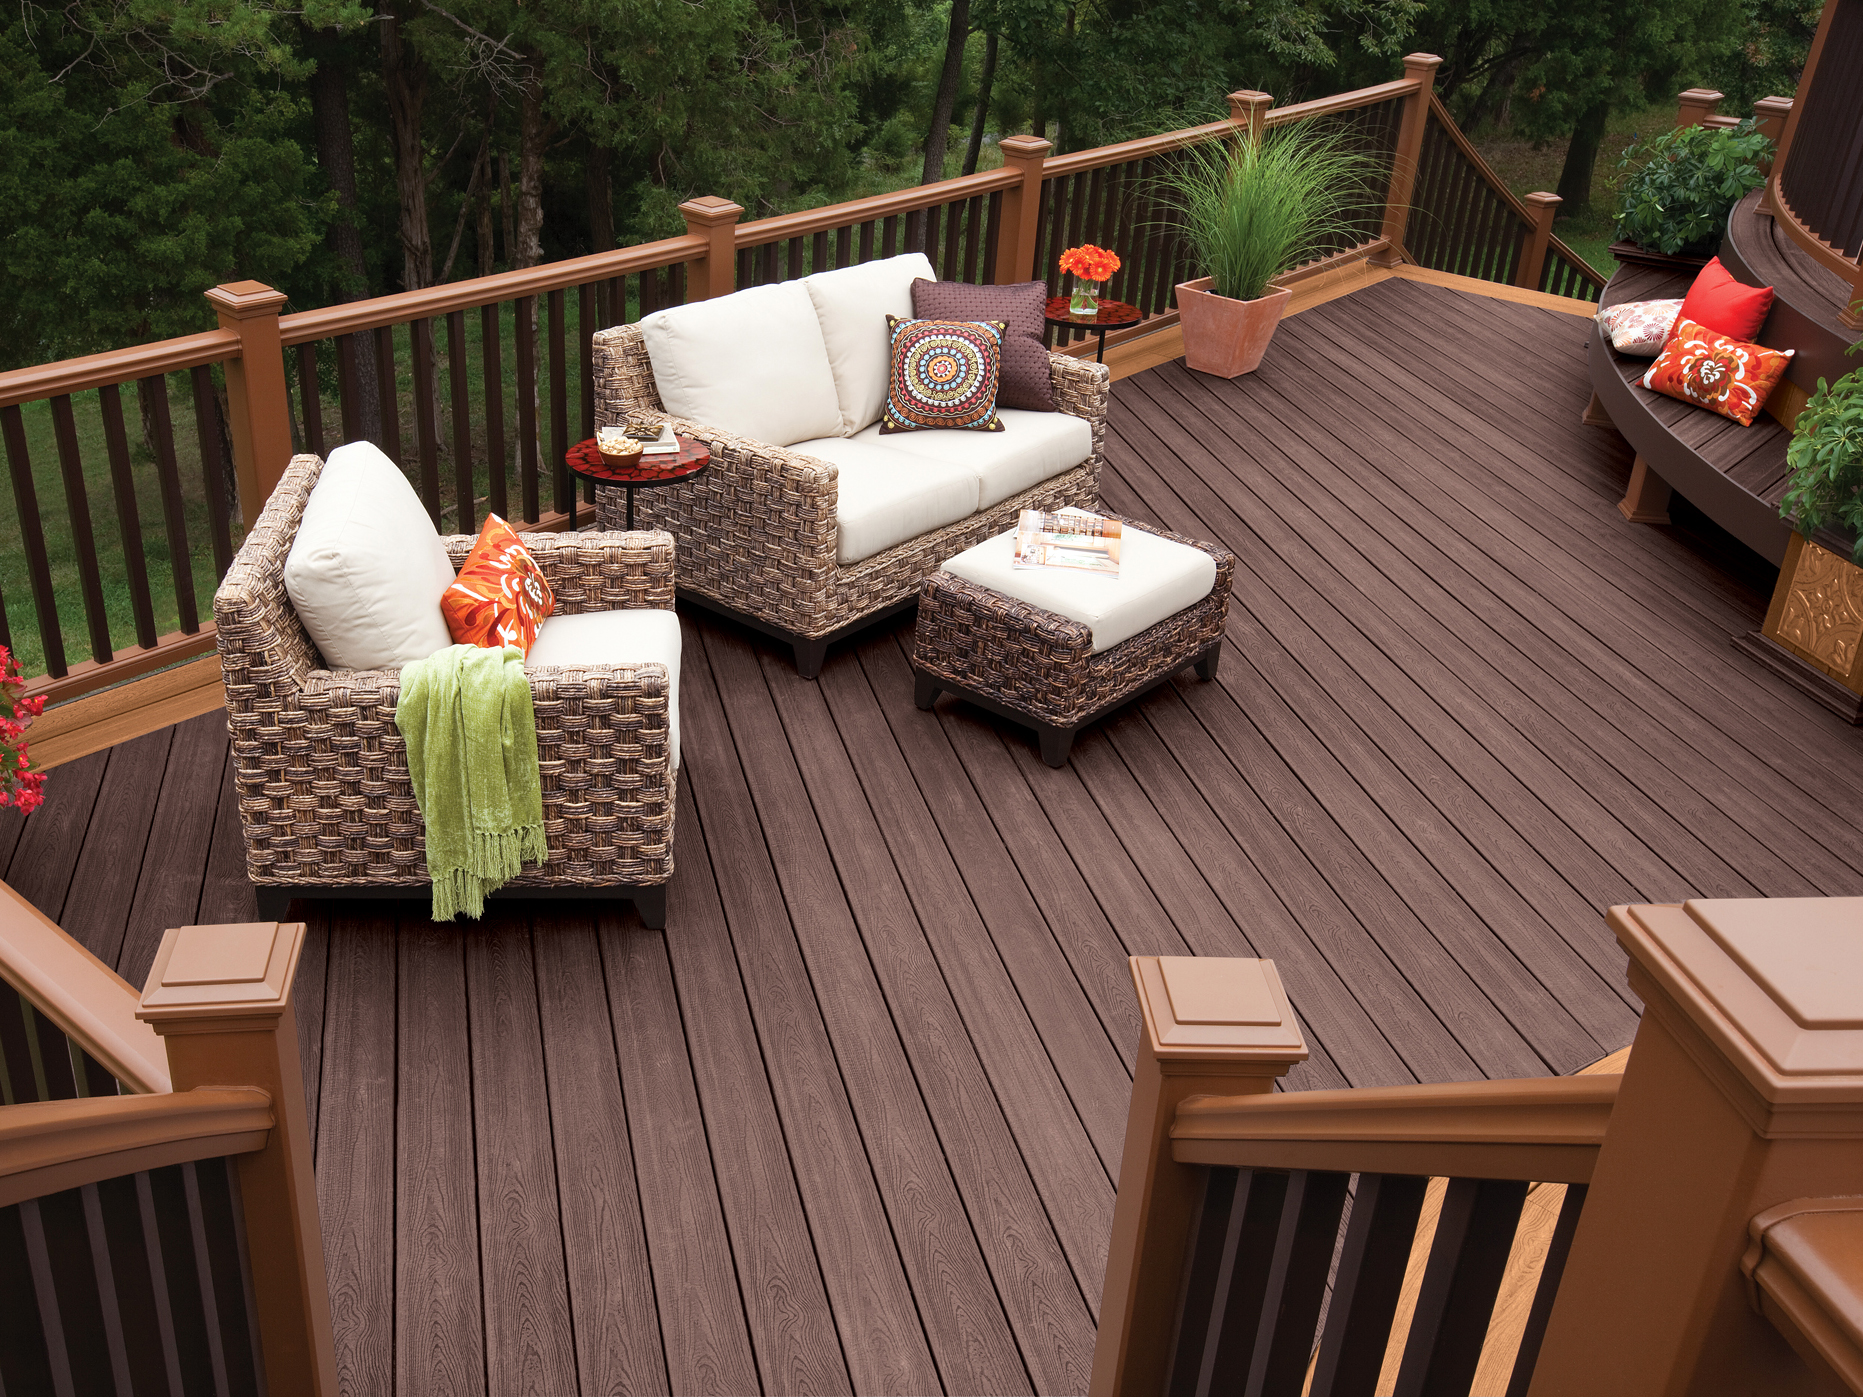 Composite decking products from Trex